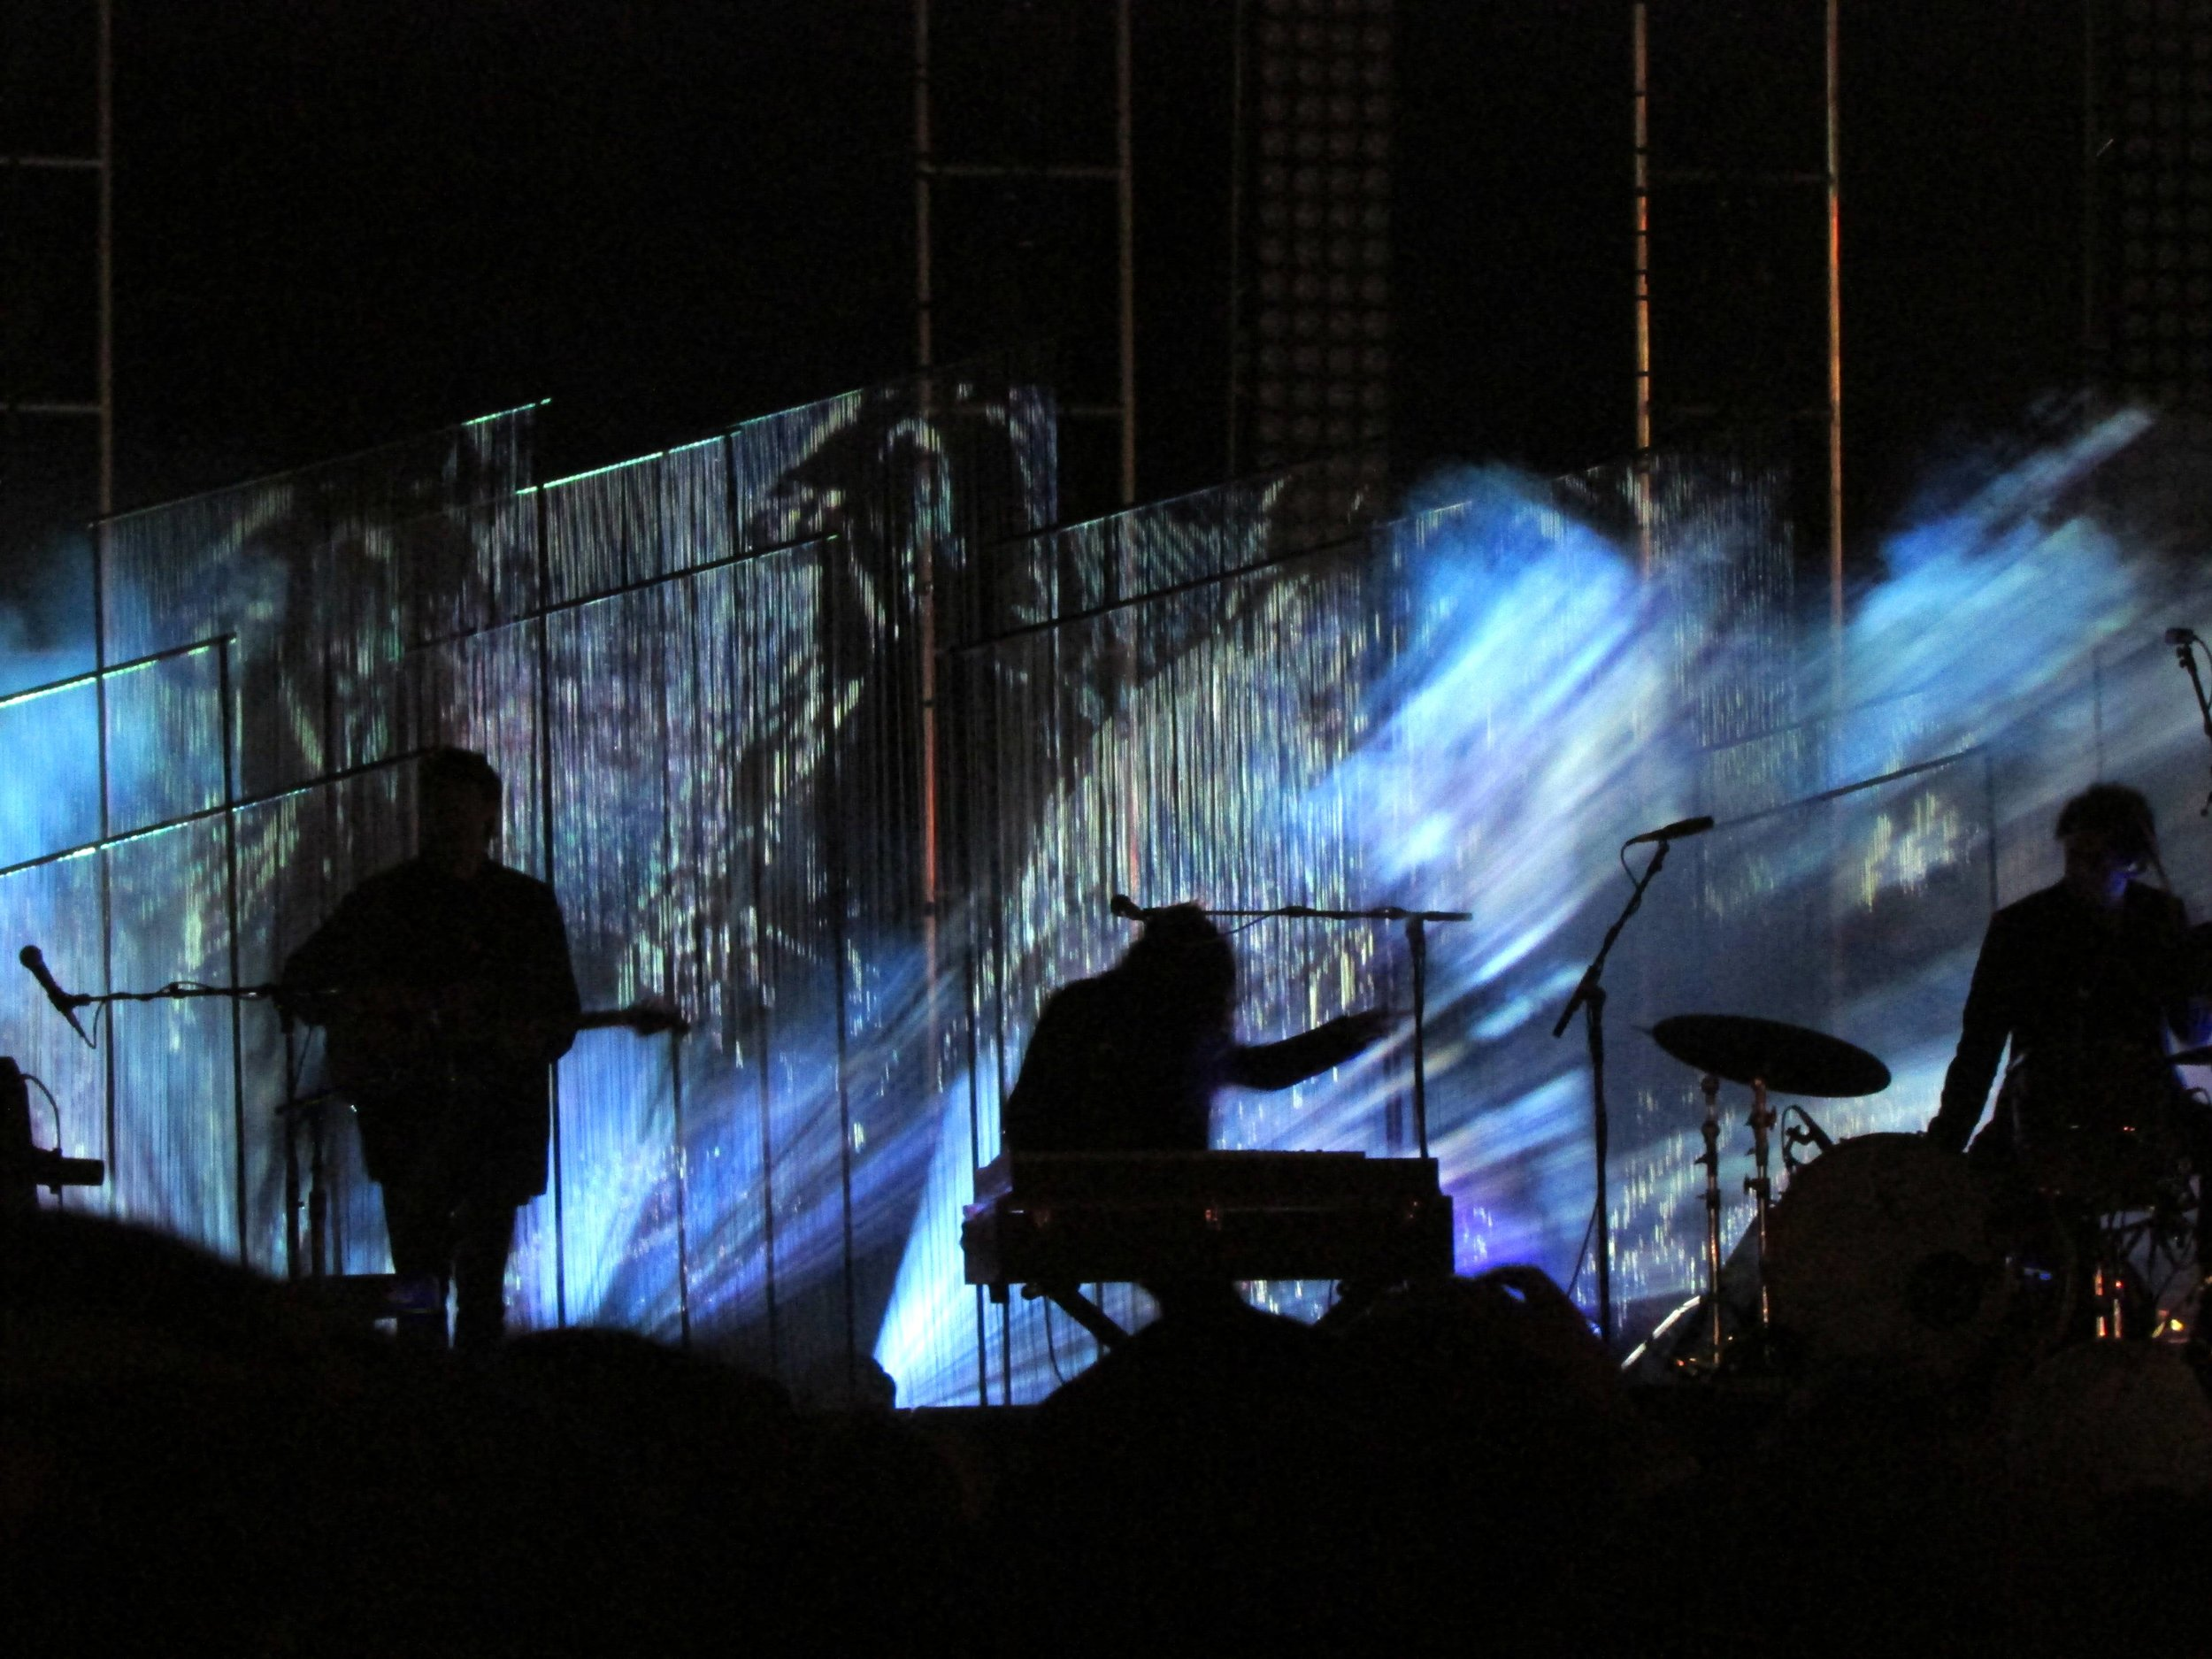 11 - Beach House's set design was exquisite, with long glass-like chandeliers hanging from the roof of the stage.JPG